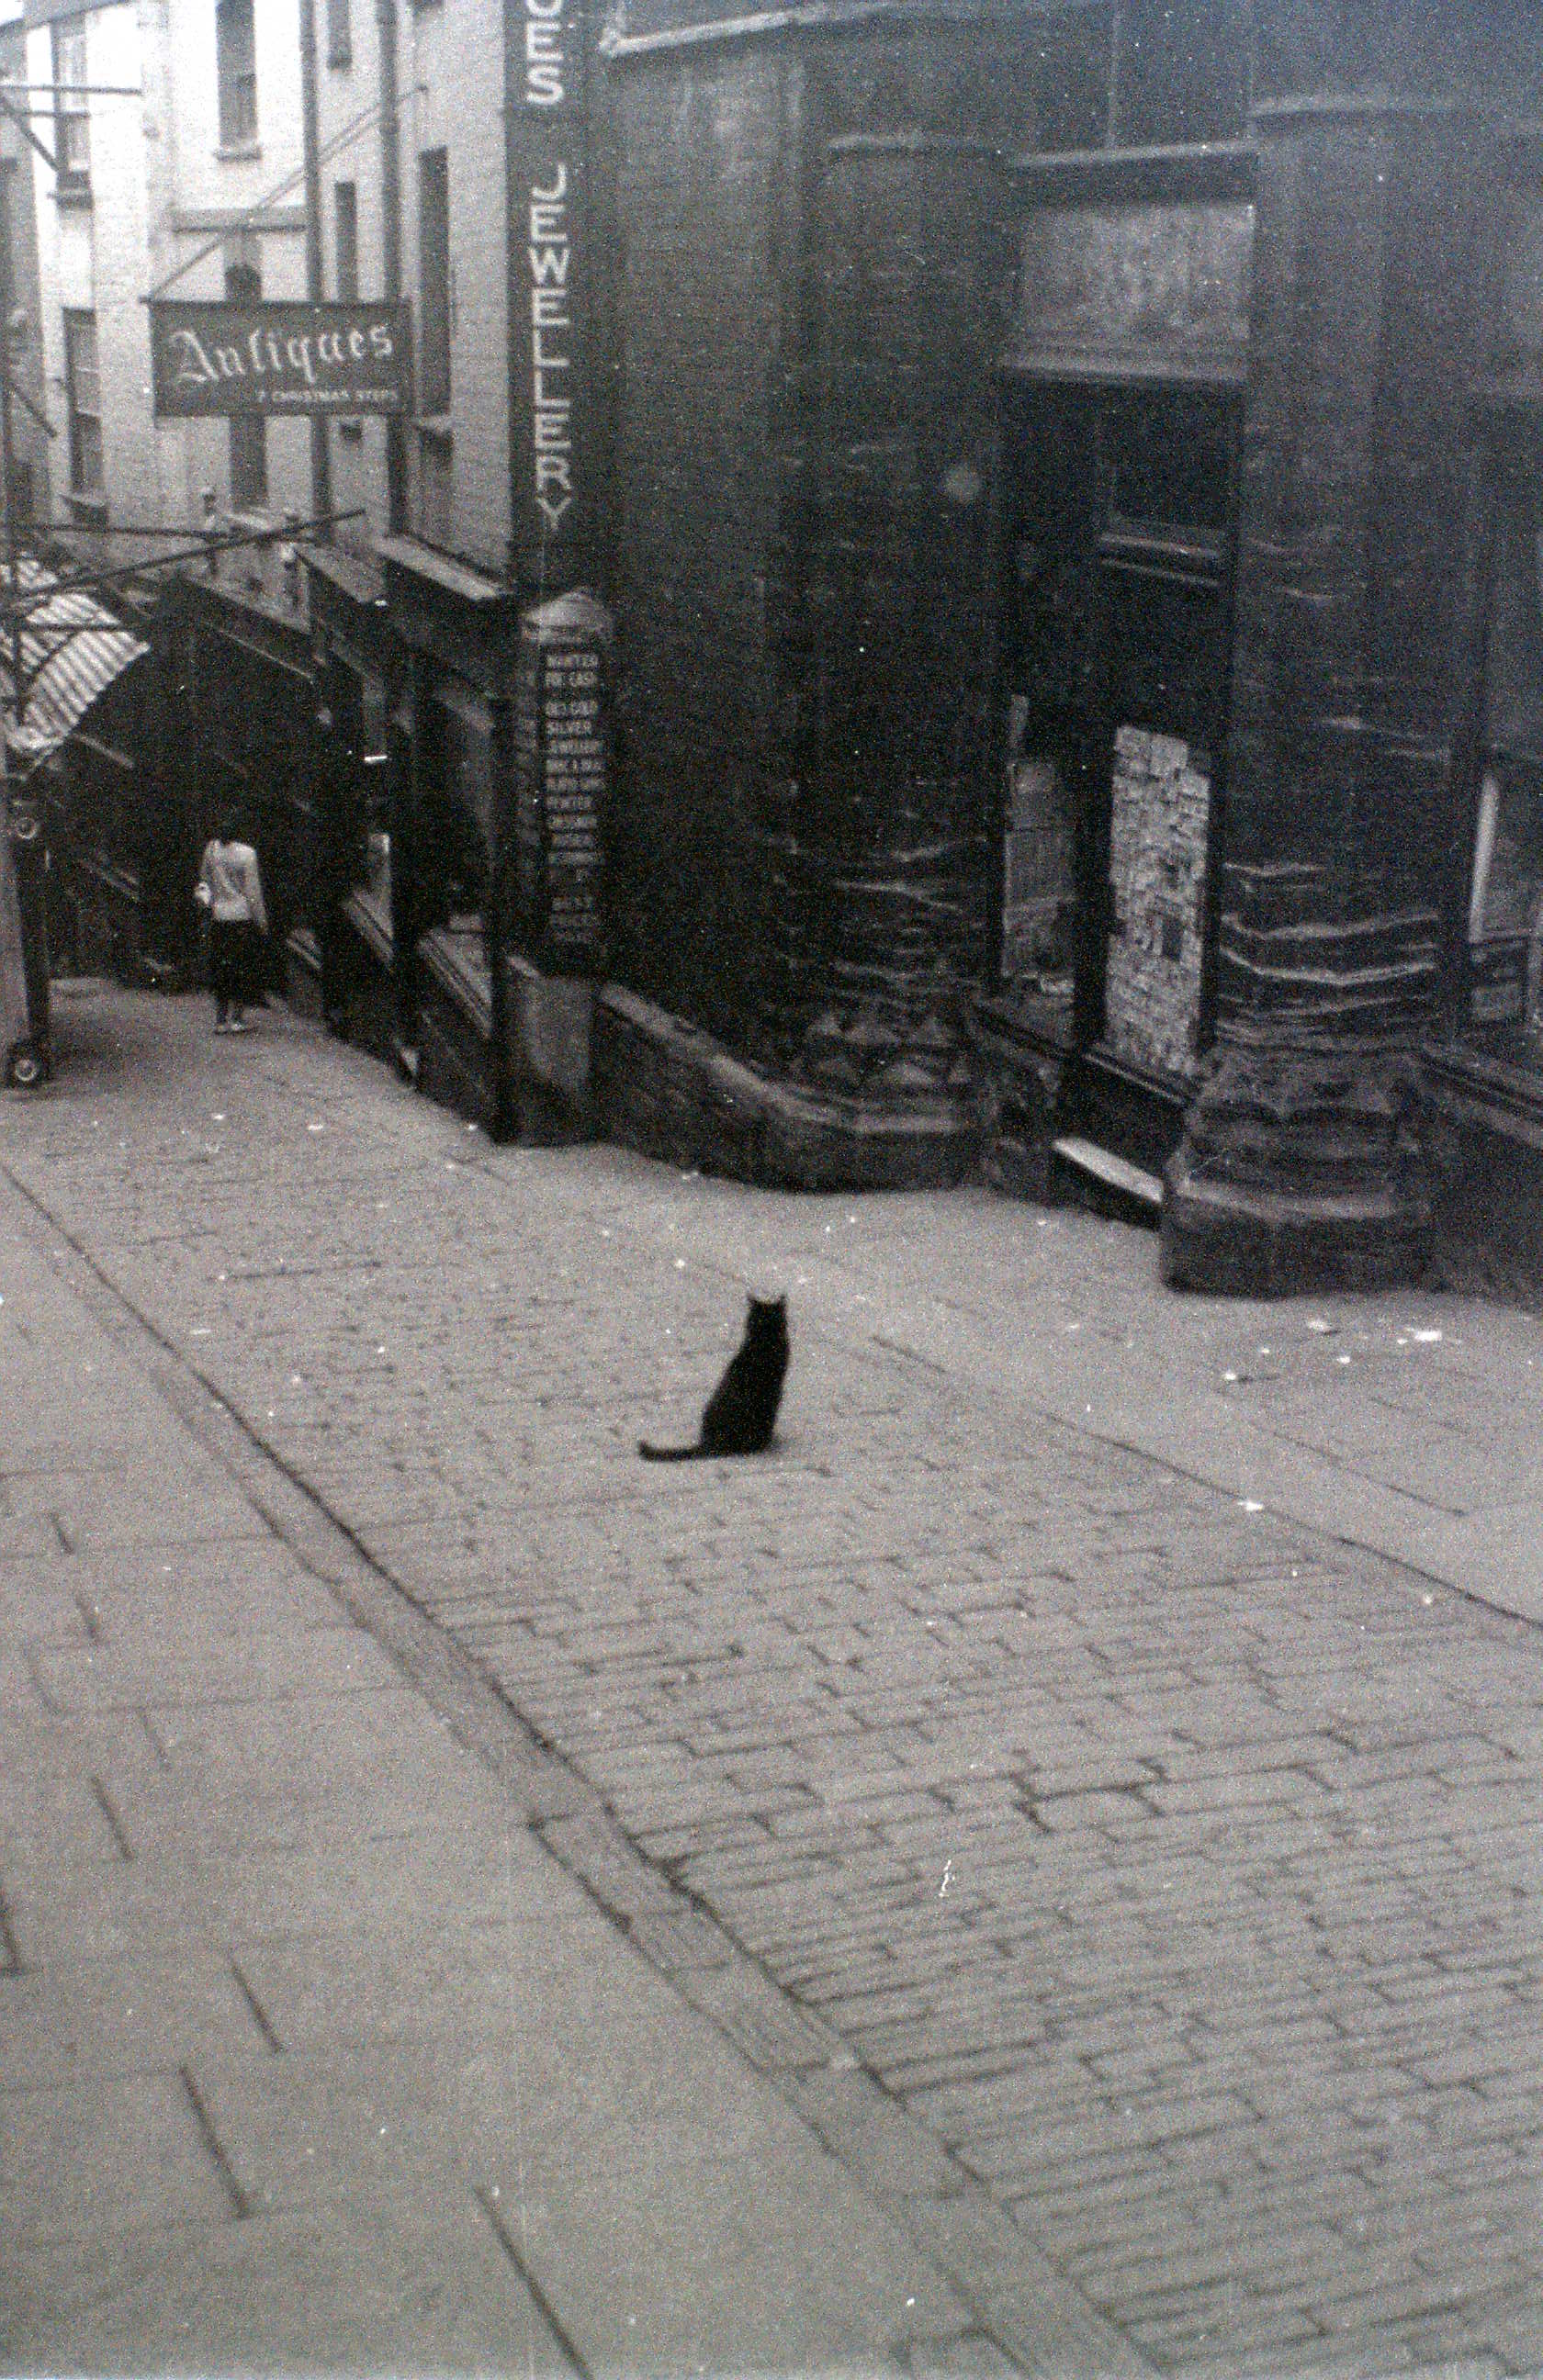 The Cat of Christmas Steps, Bristol, 30 July 1958